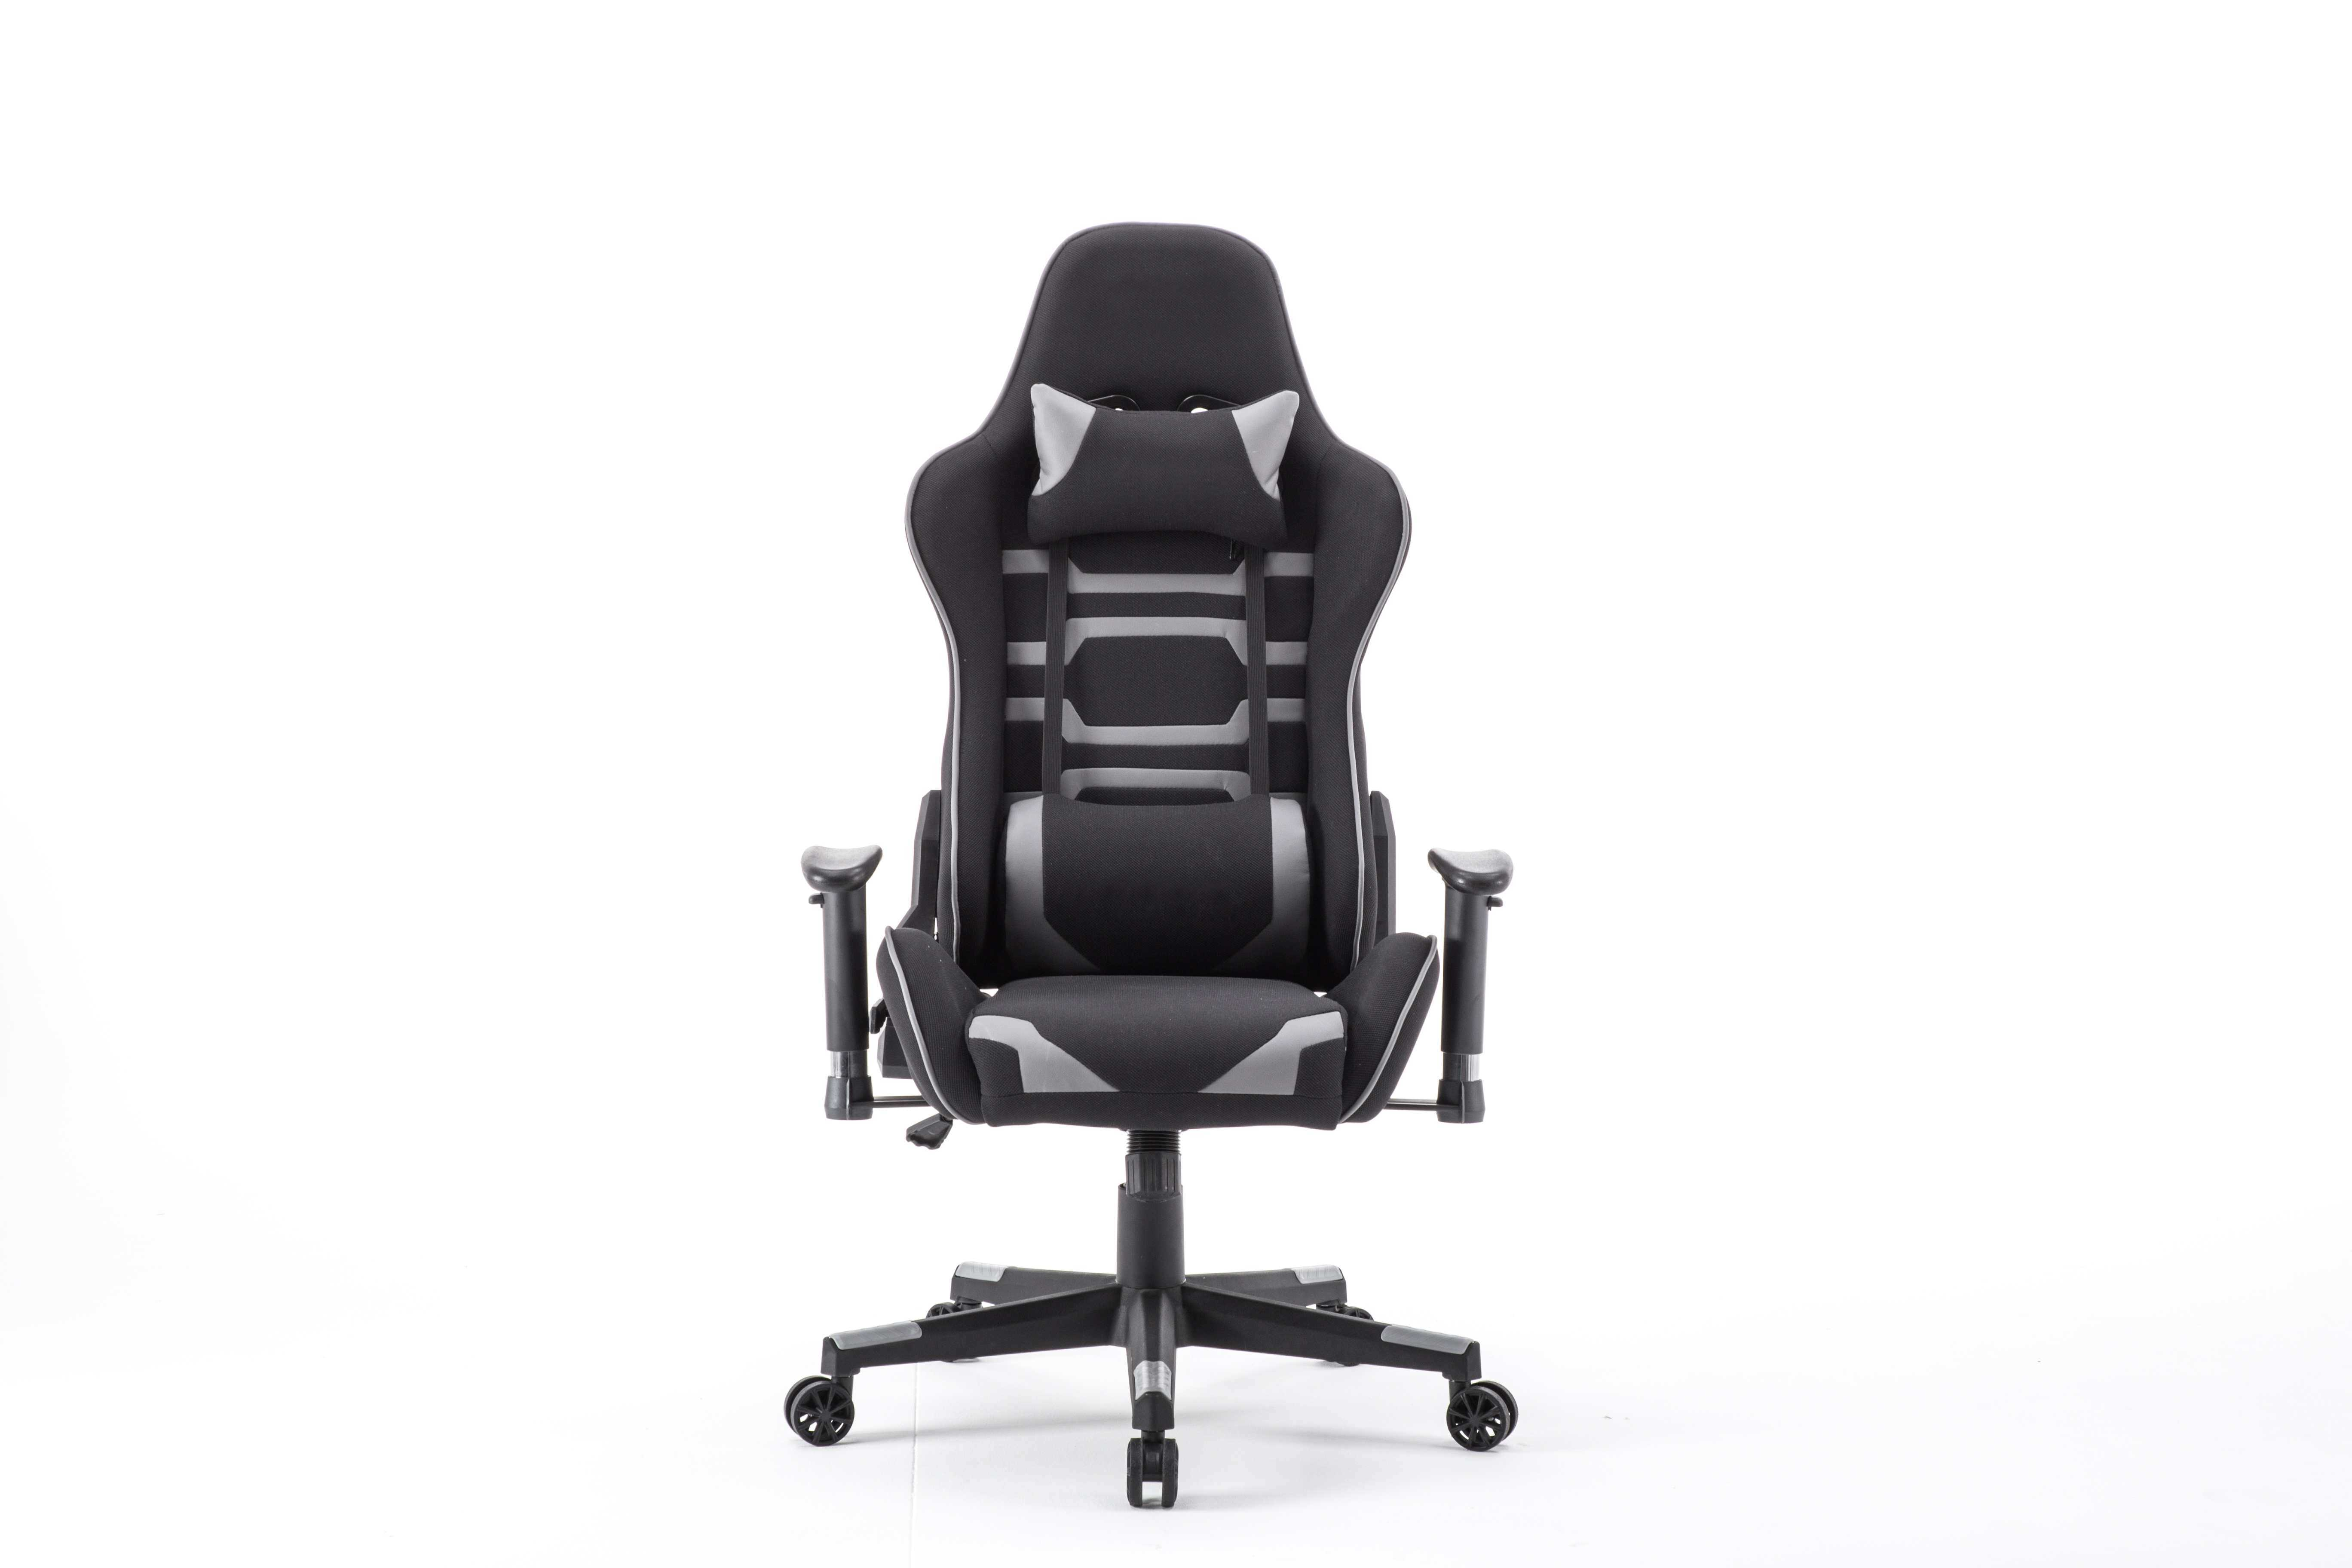 China High Quality Custom Sports Video Game Car Seats And Recliners With Pedals China Gaming Chair Office Chair